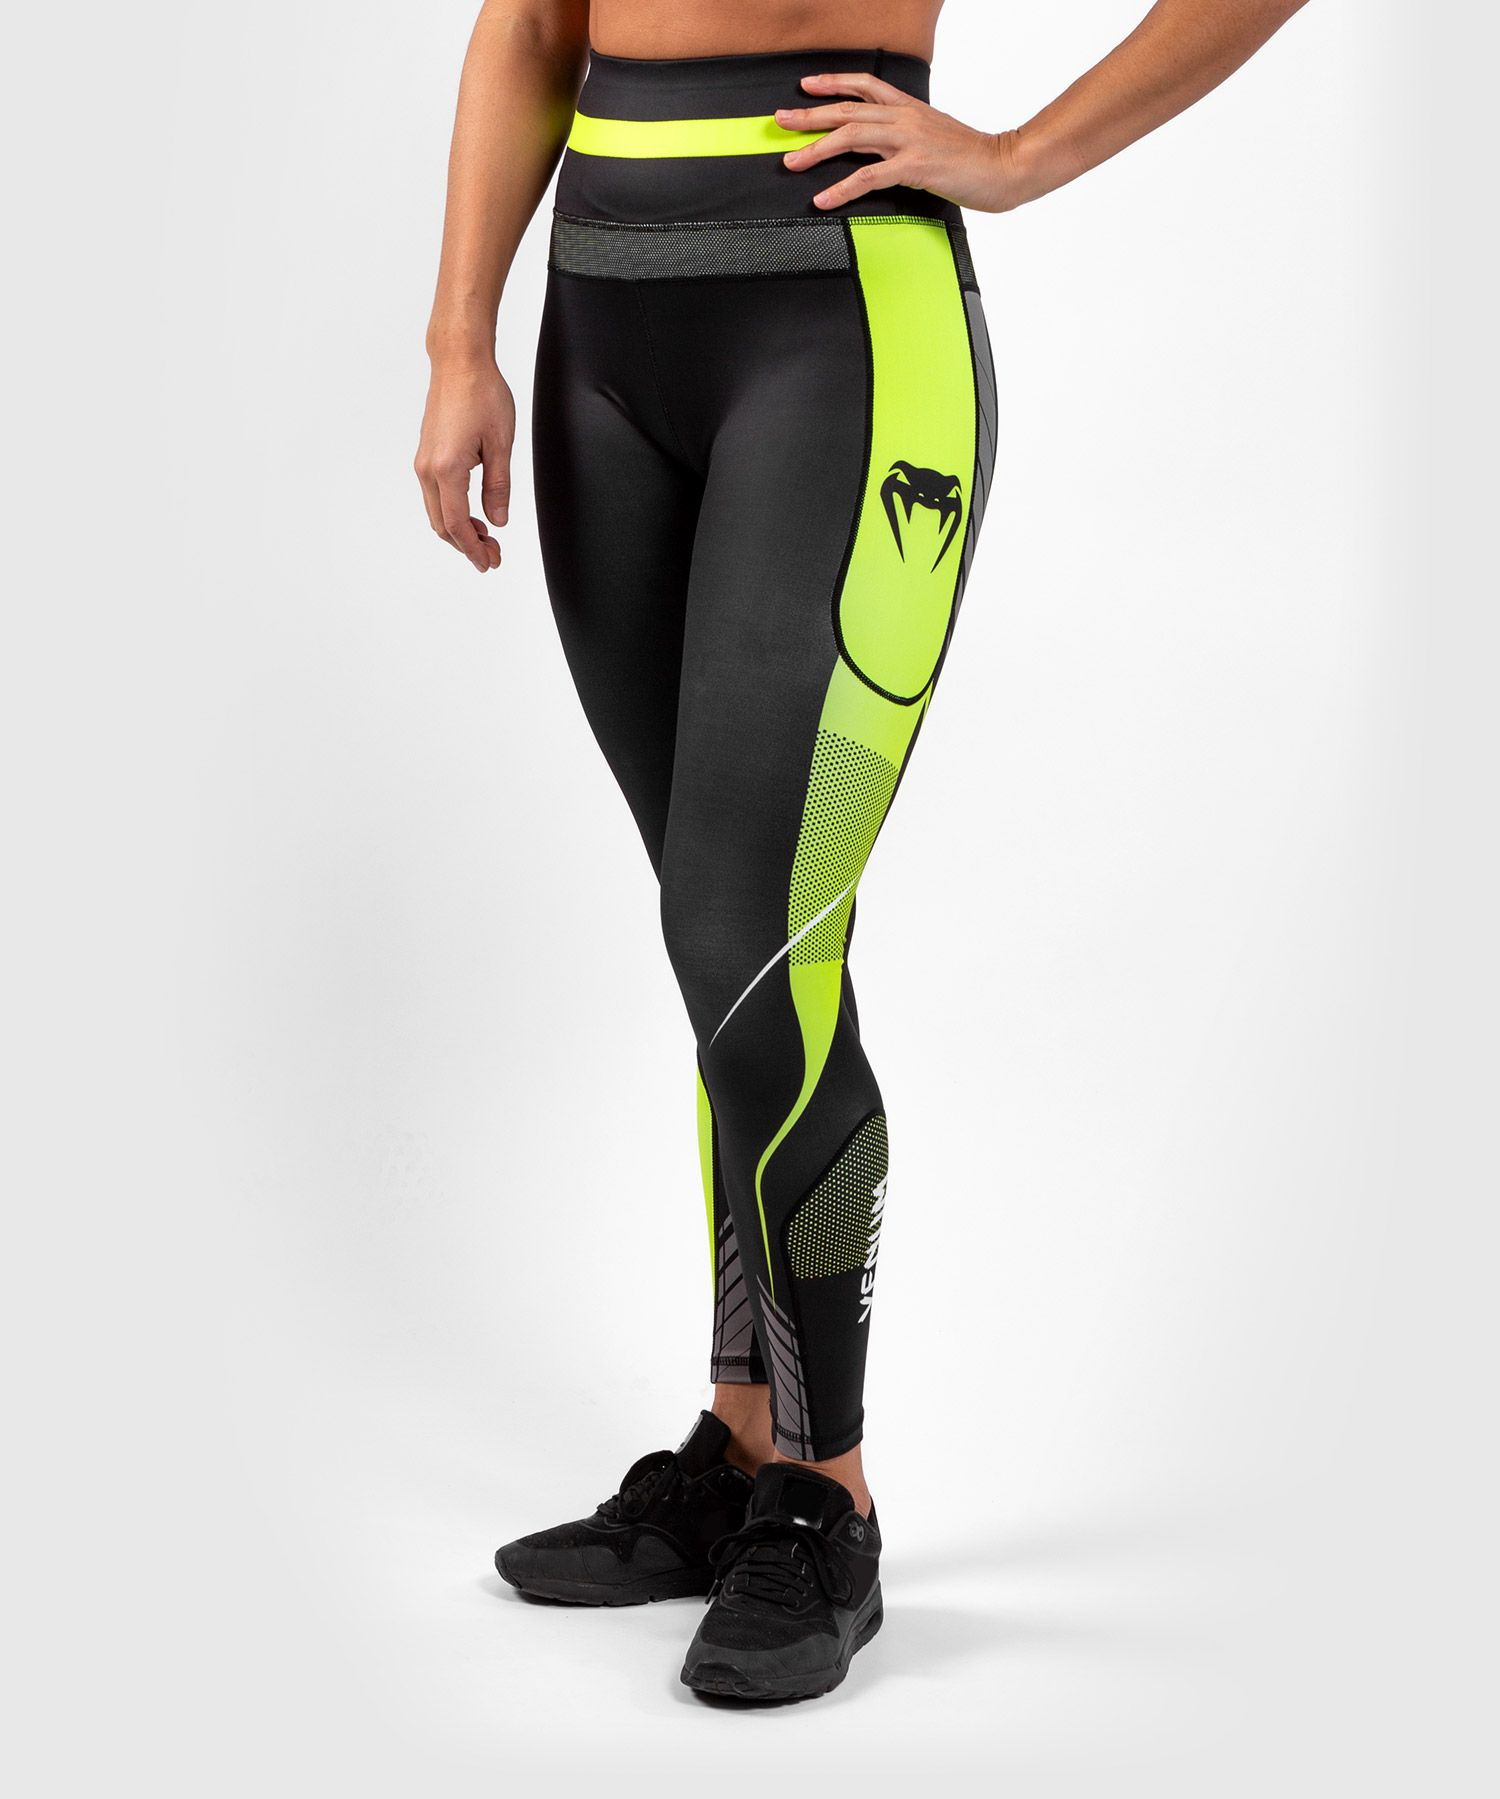 Legging Venum Training Camp 3.0 - Mujeres